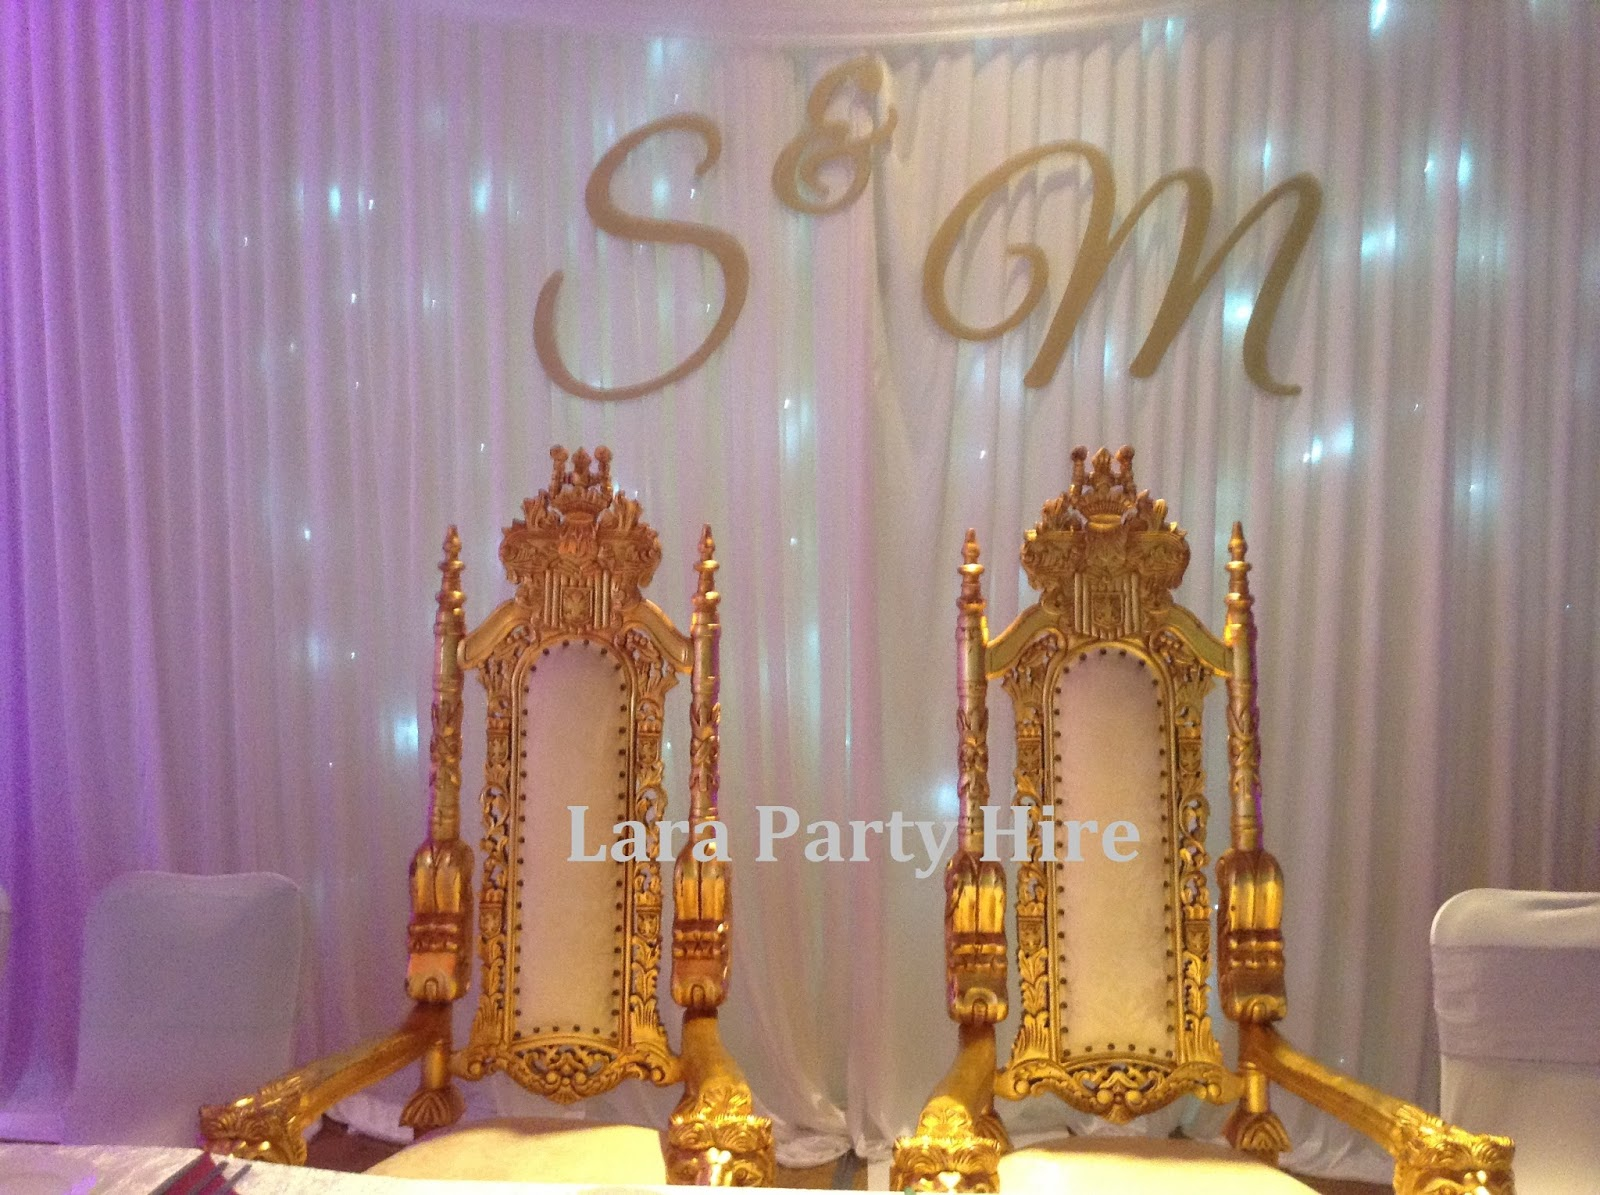 Lara Party Hire: Large Lion Head Throne Chairs